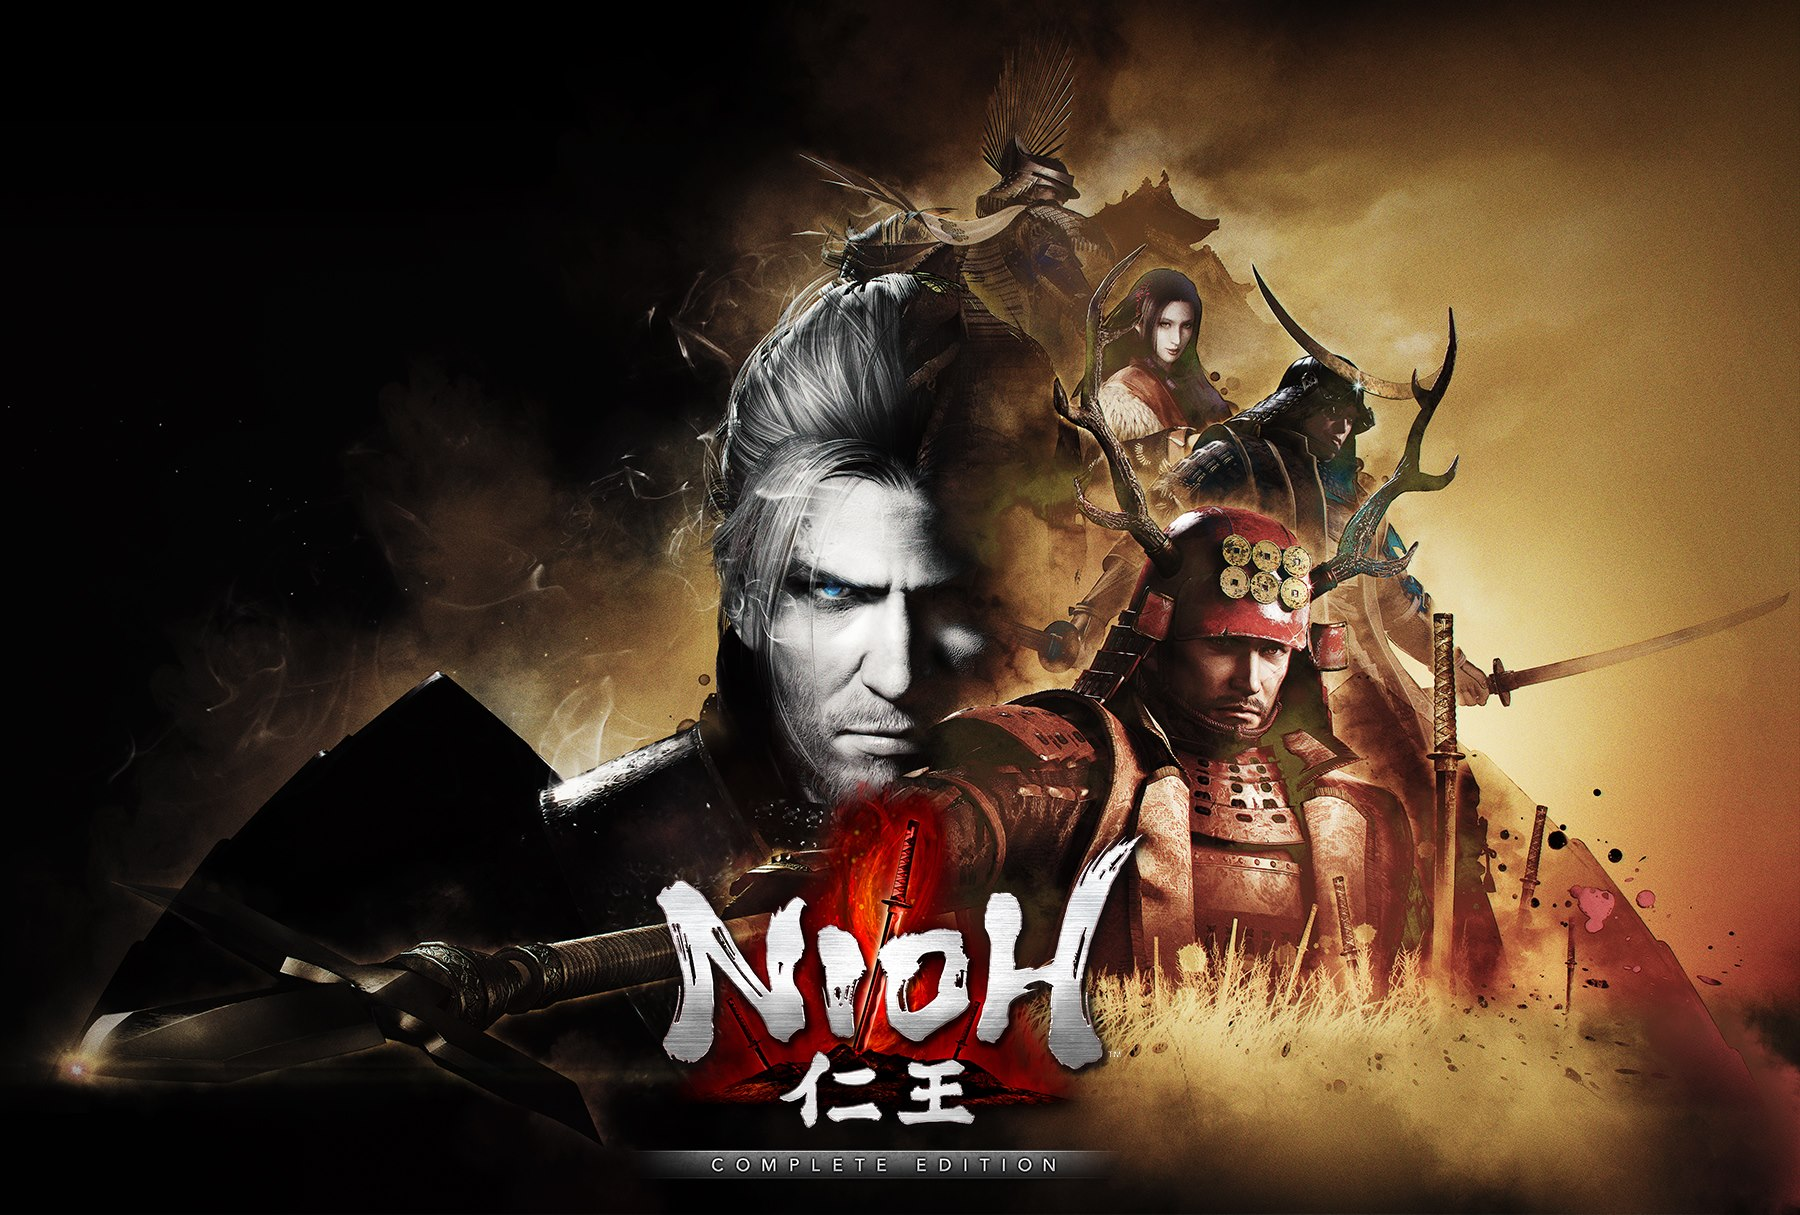 Complete Edition a caminho do PC via Steam — Nioh